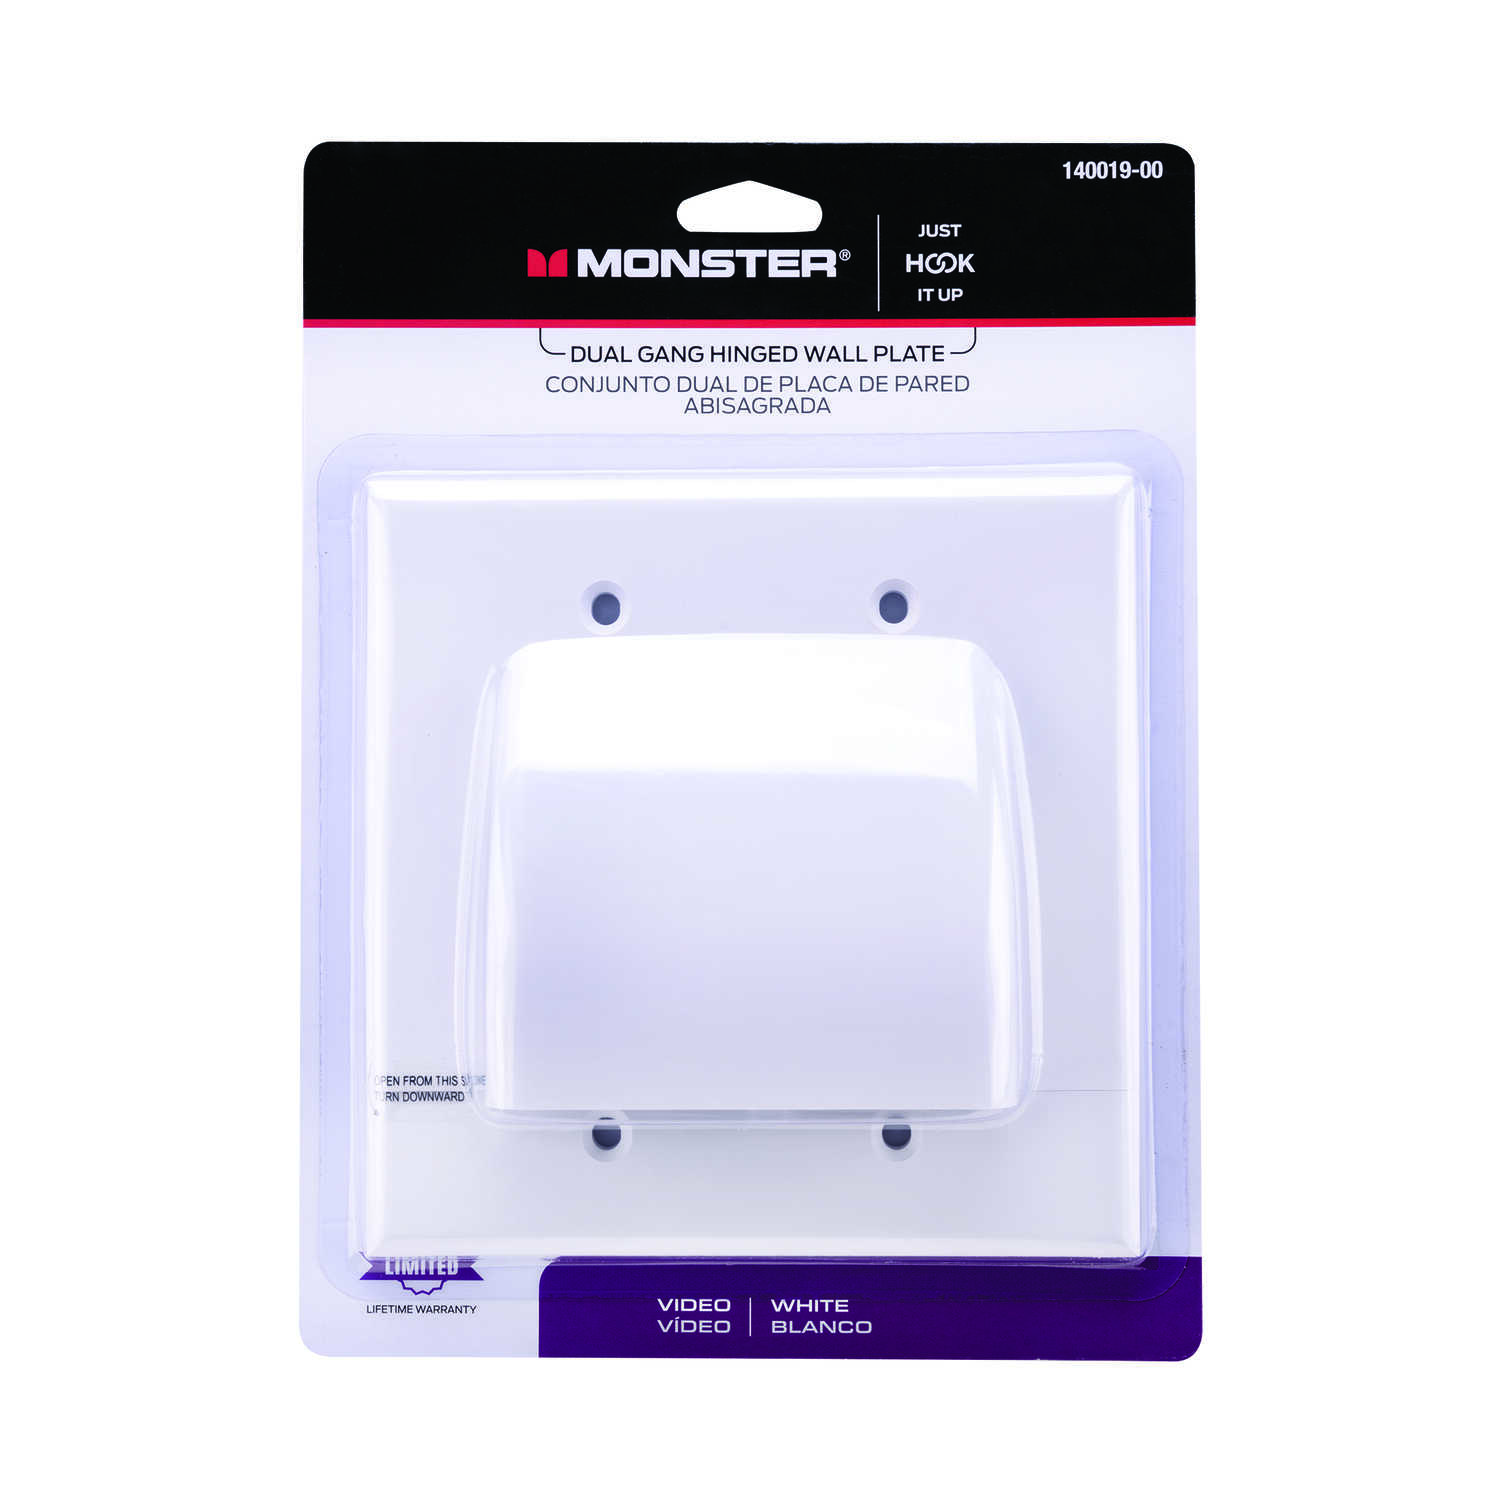 Monster Cable  Just Hook It Up  White  2 gang Cable/Telco  Wall Plate